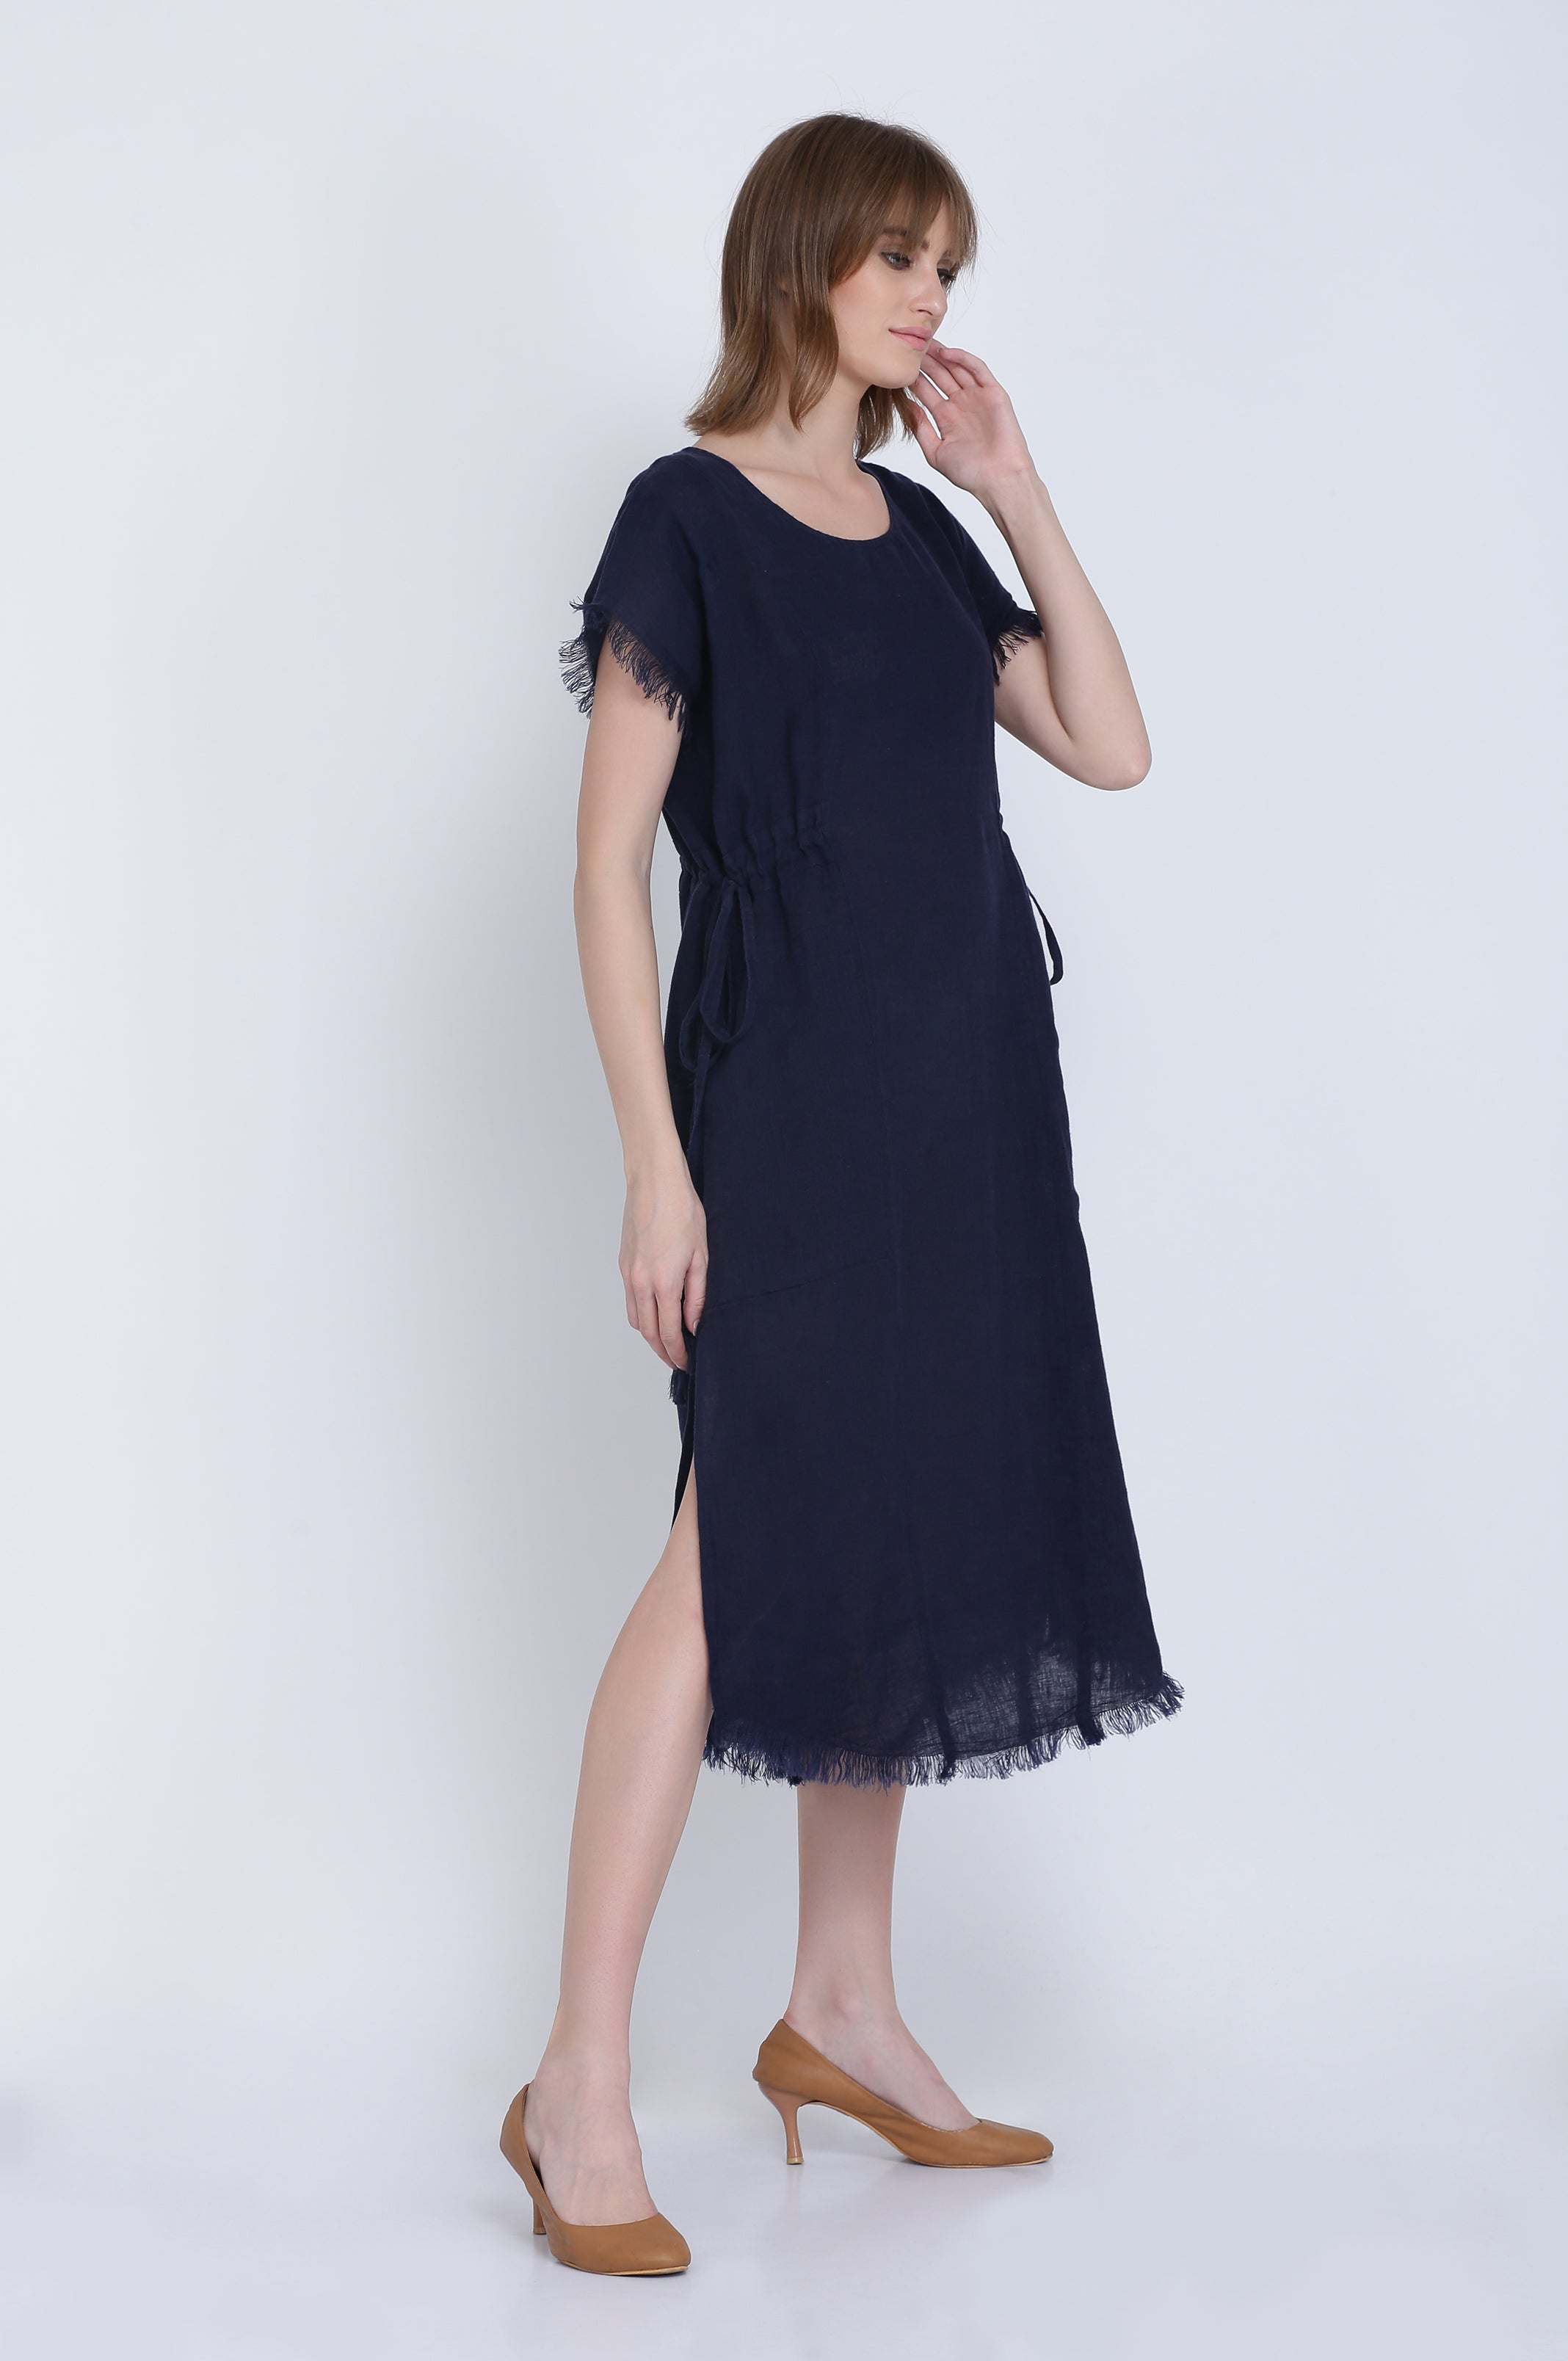 The Mila Linen Dress